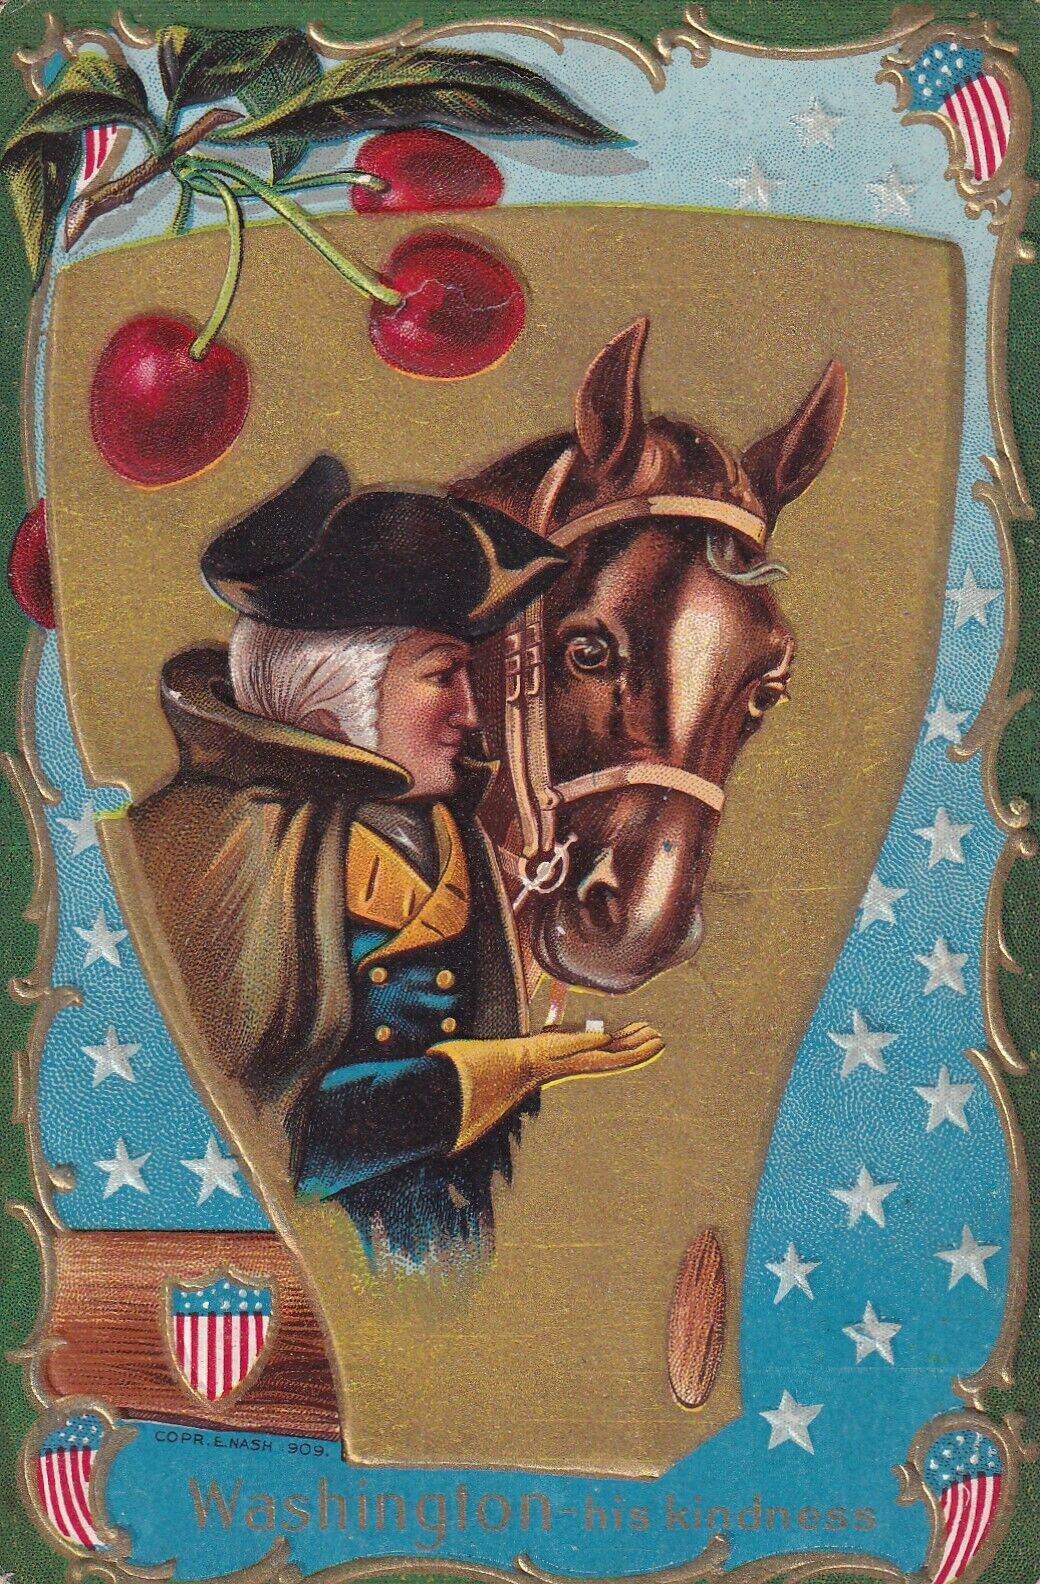 AS: Washington feeling sugar cube to his horse 'his kindness, Cherry, WINSCH